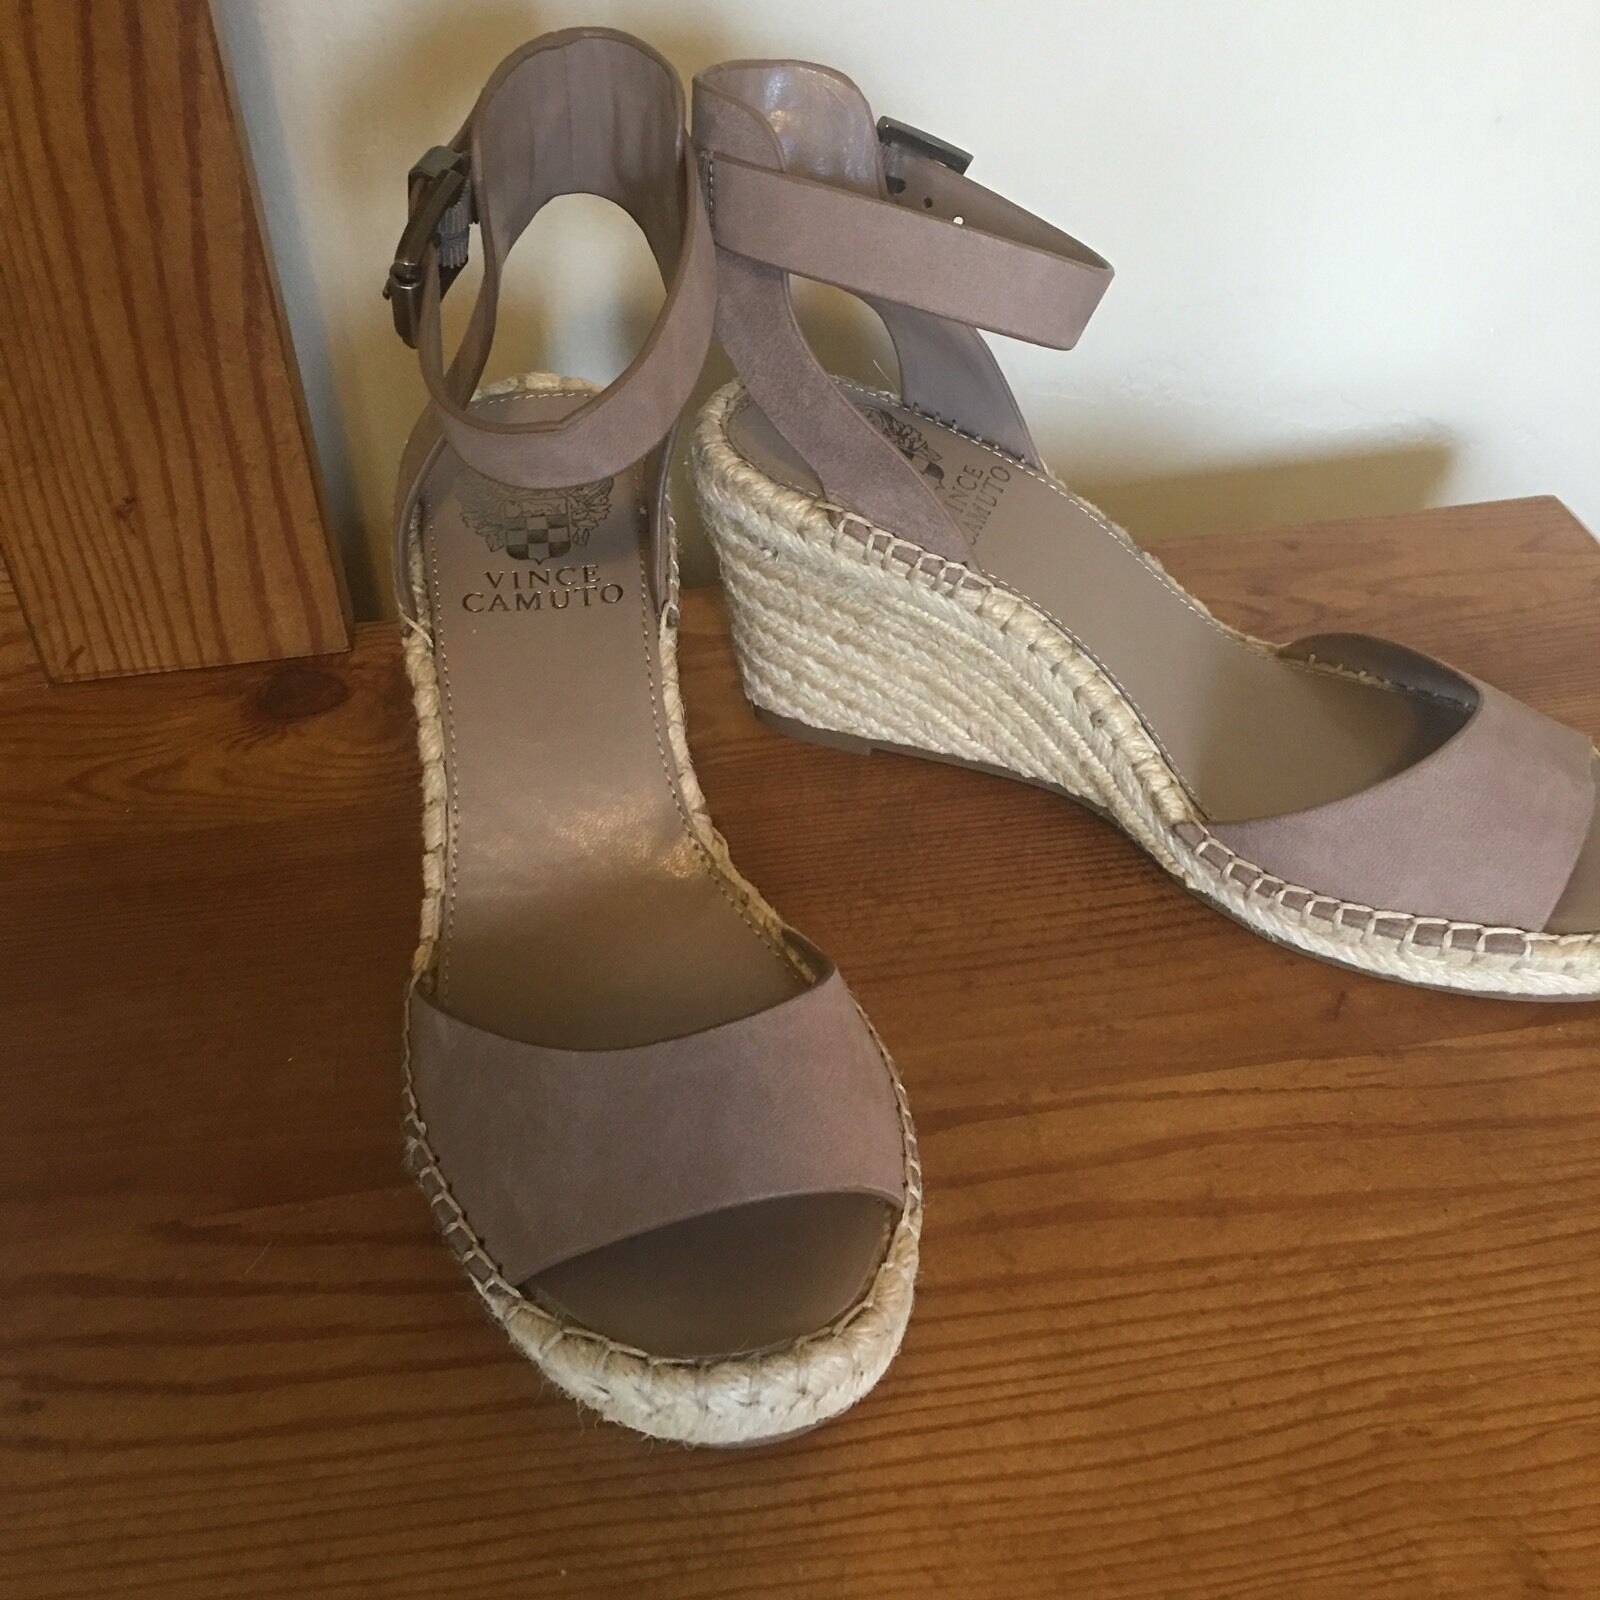 Vince Camuto Tagger Espadrille Leather Wedge Open Toe Taupe Sandal Heel 10 M